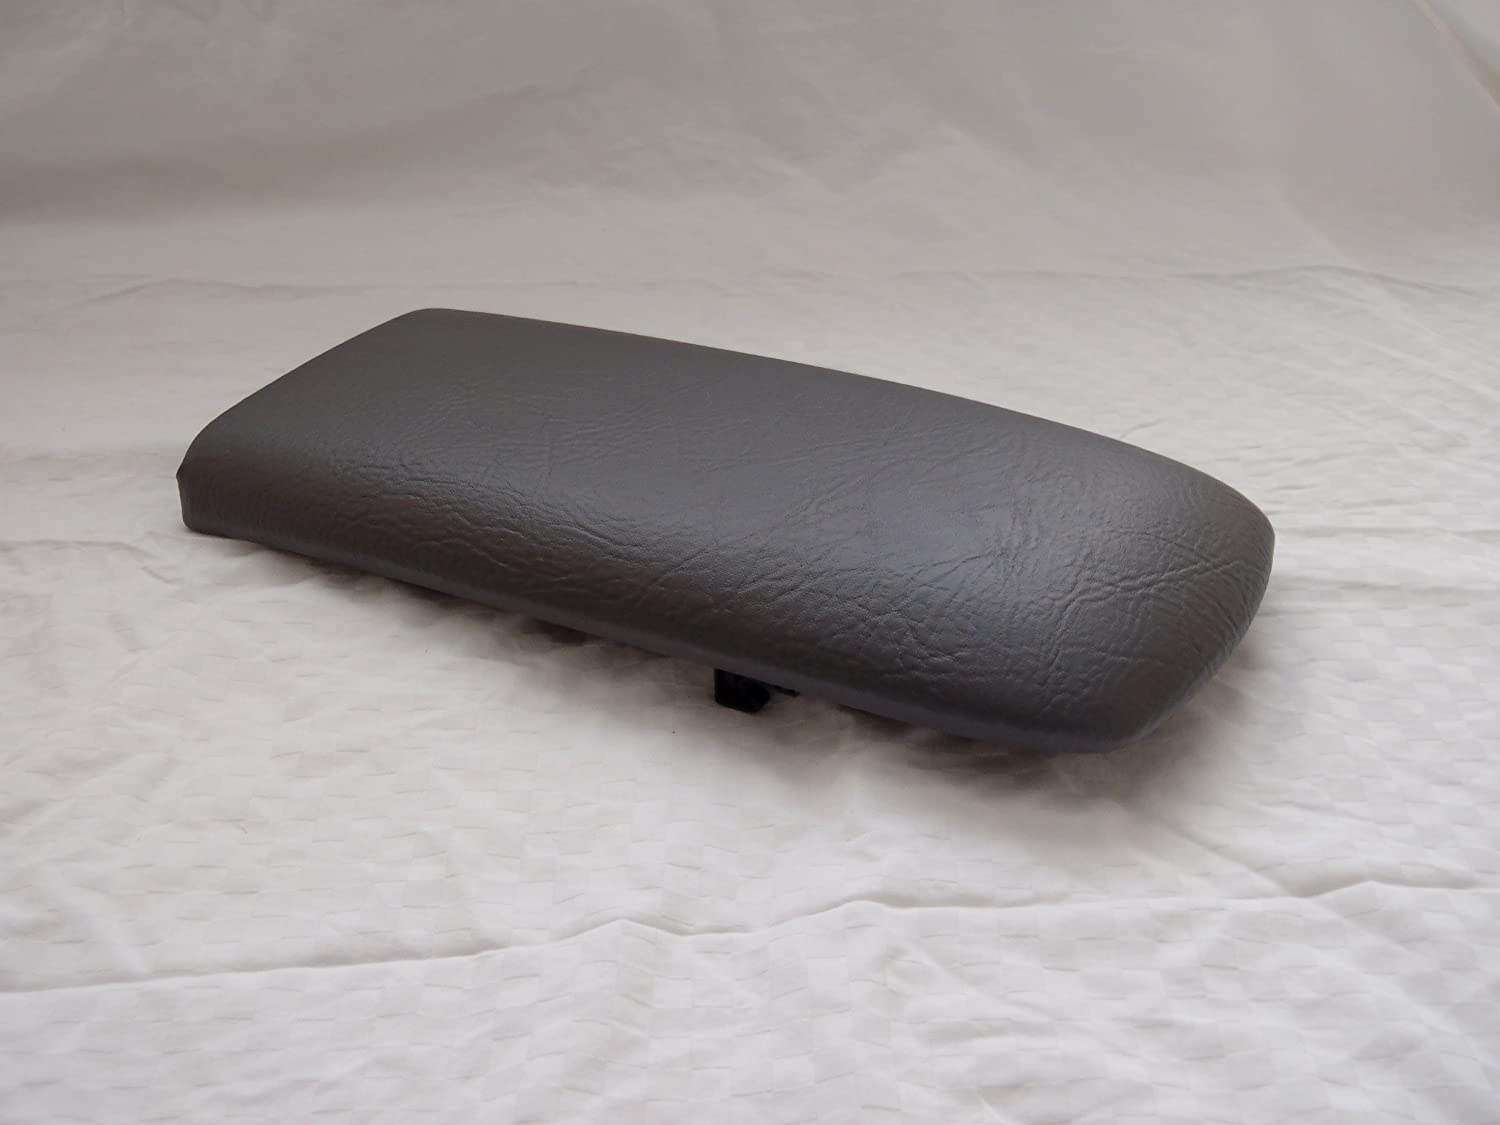 Medium Prairie Tan Ford Explorer Premium Padded replacement armrest console cover with staples 1997-05